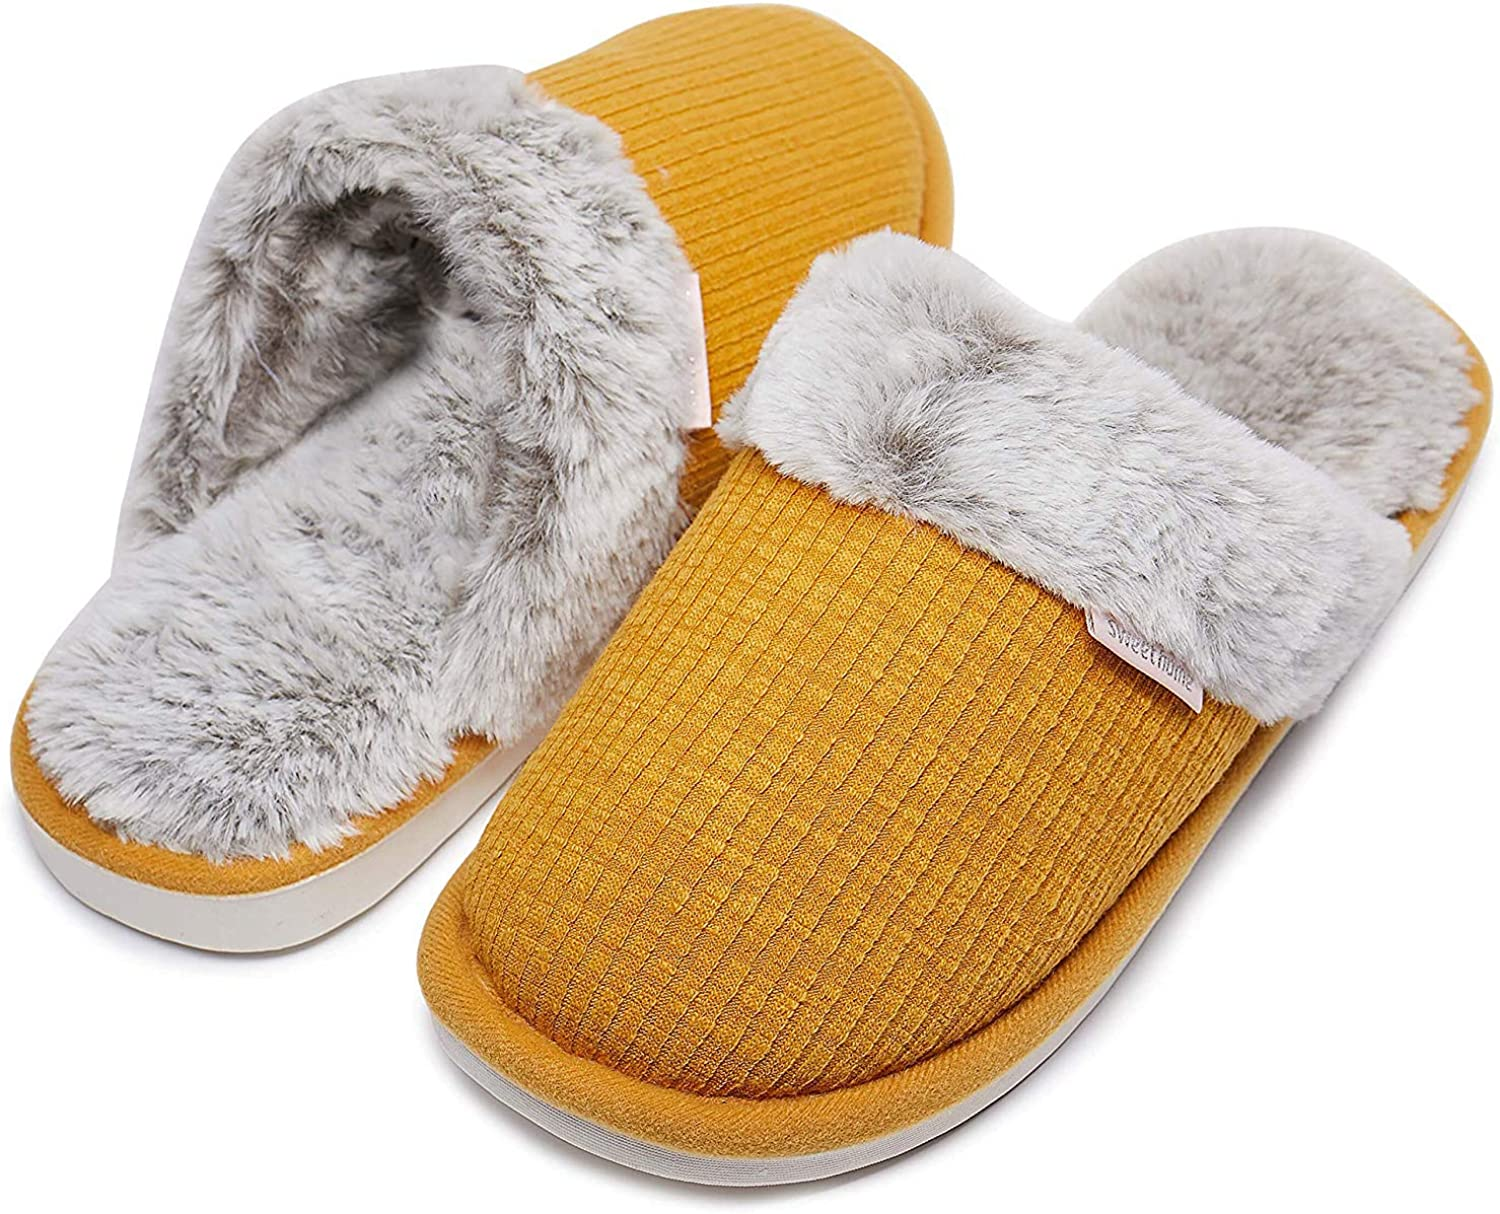 Womens Slippers,Memory Foam Fluffy Warm Non-Slip Comfortable Slip-on House shoes,Plush Indoor & Outdoor Winter